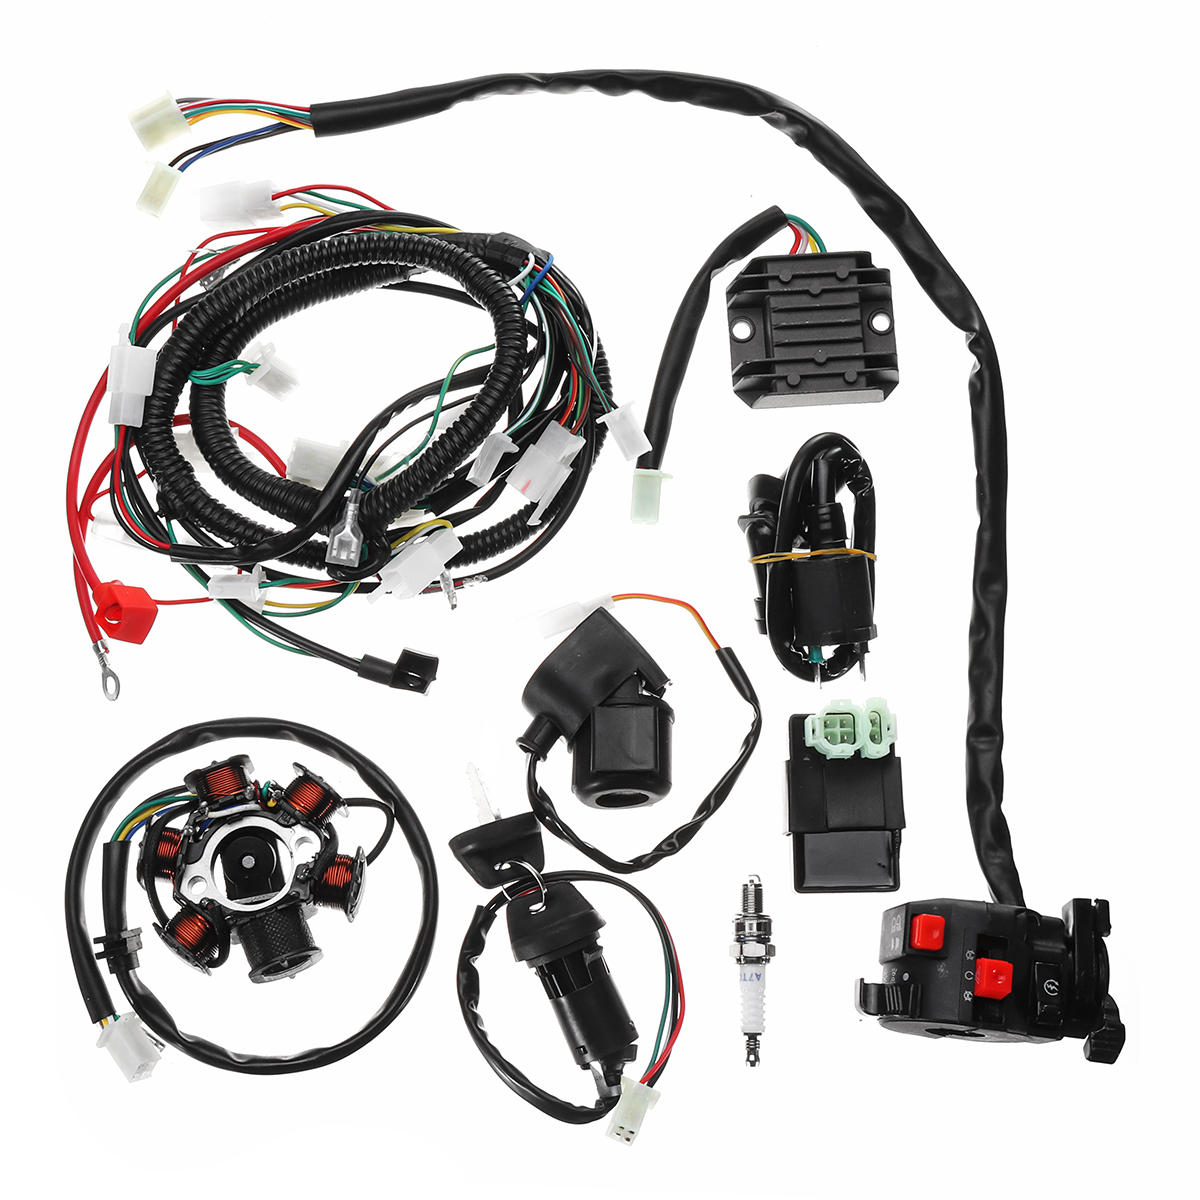 Wiring 150cc Harness Po 244 - Wiring Liry Diagram A4